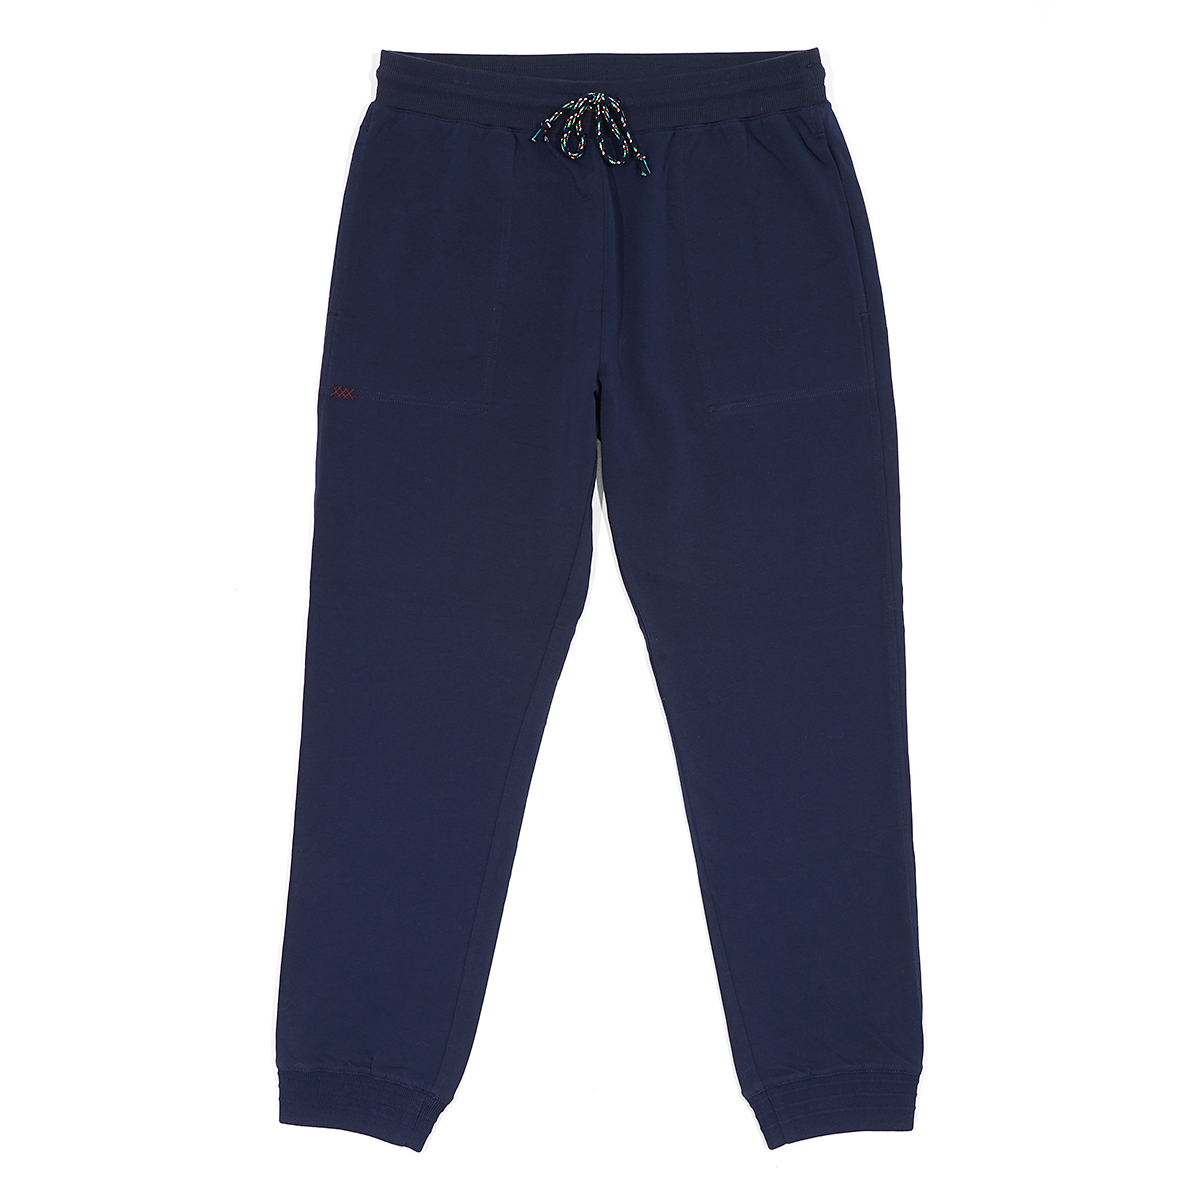 Men's Rhone Bolinas Jogger - Color: Navy - Size: S, Navy, large, image 1